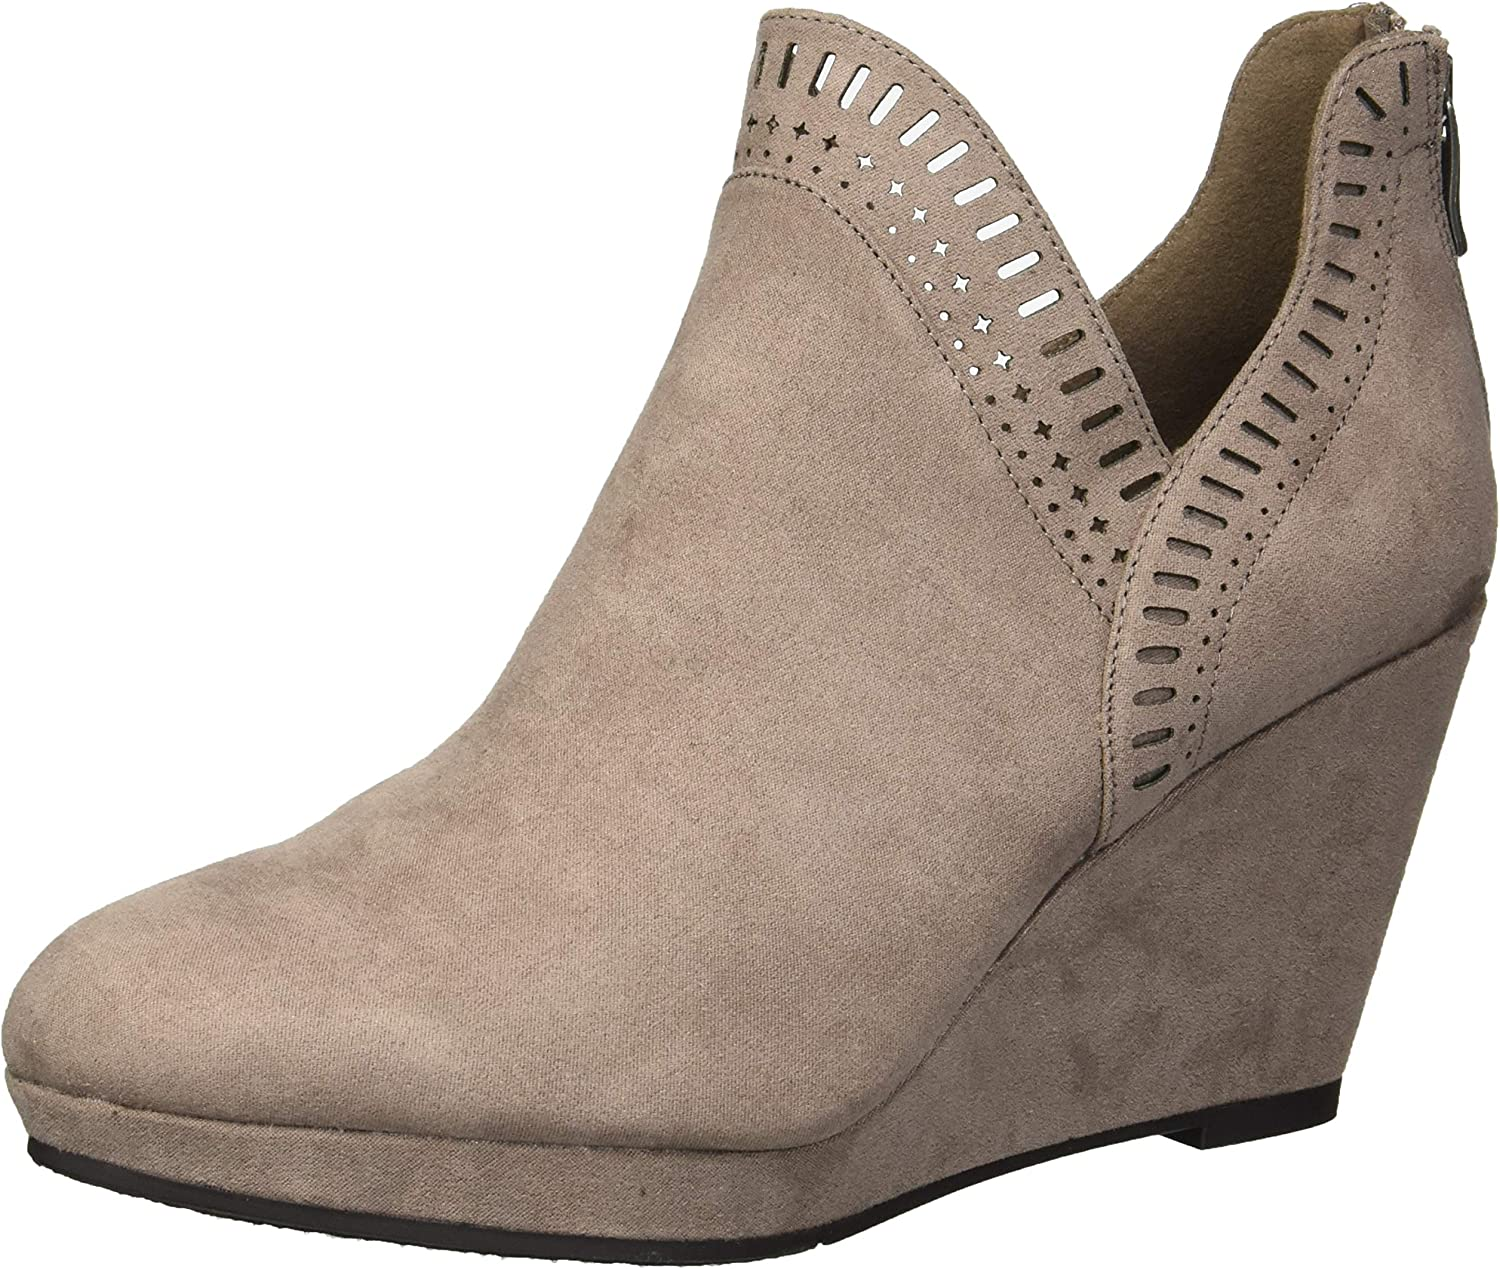 CL by Chinese Laundry Women's Vicci Ankle Boot